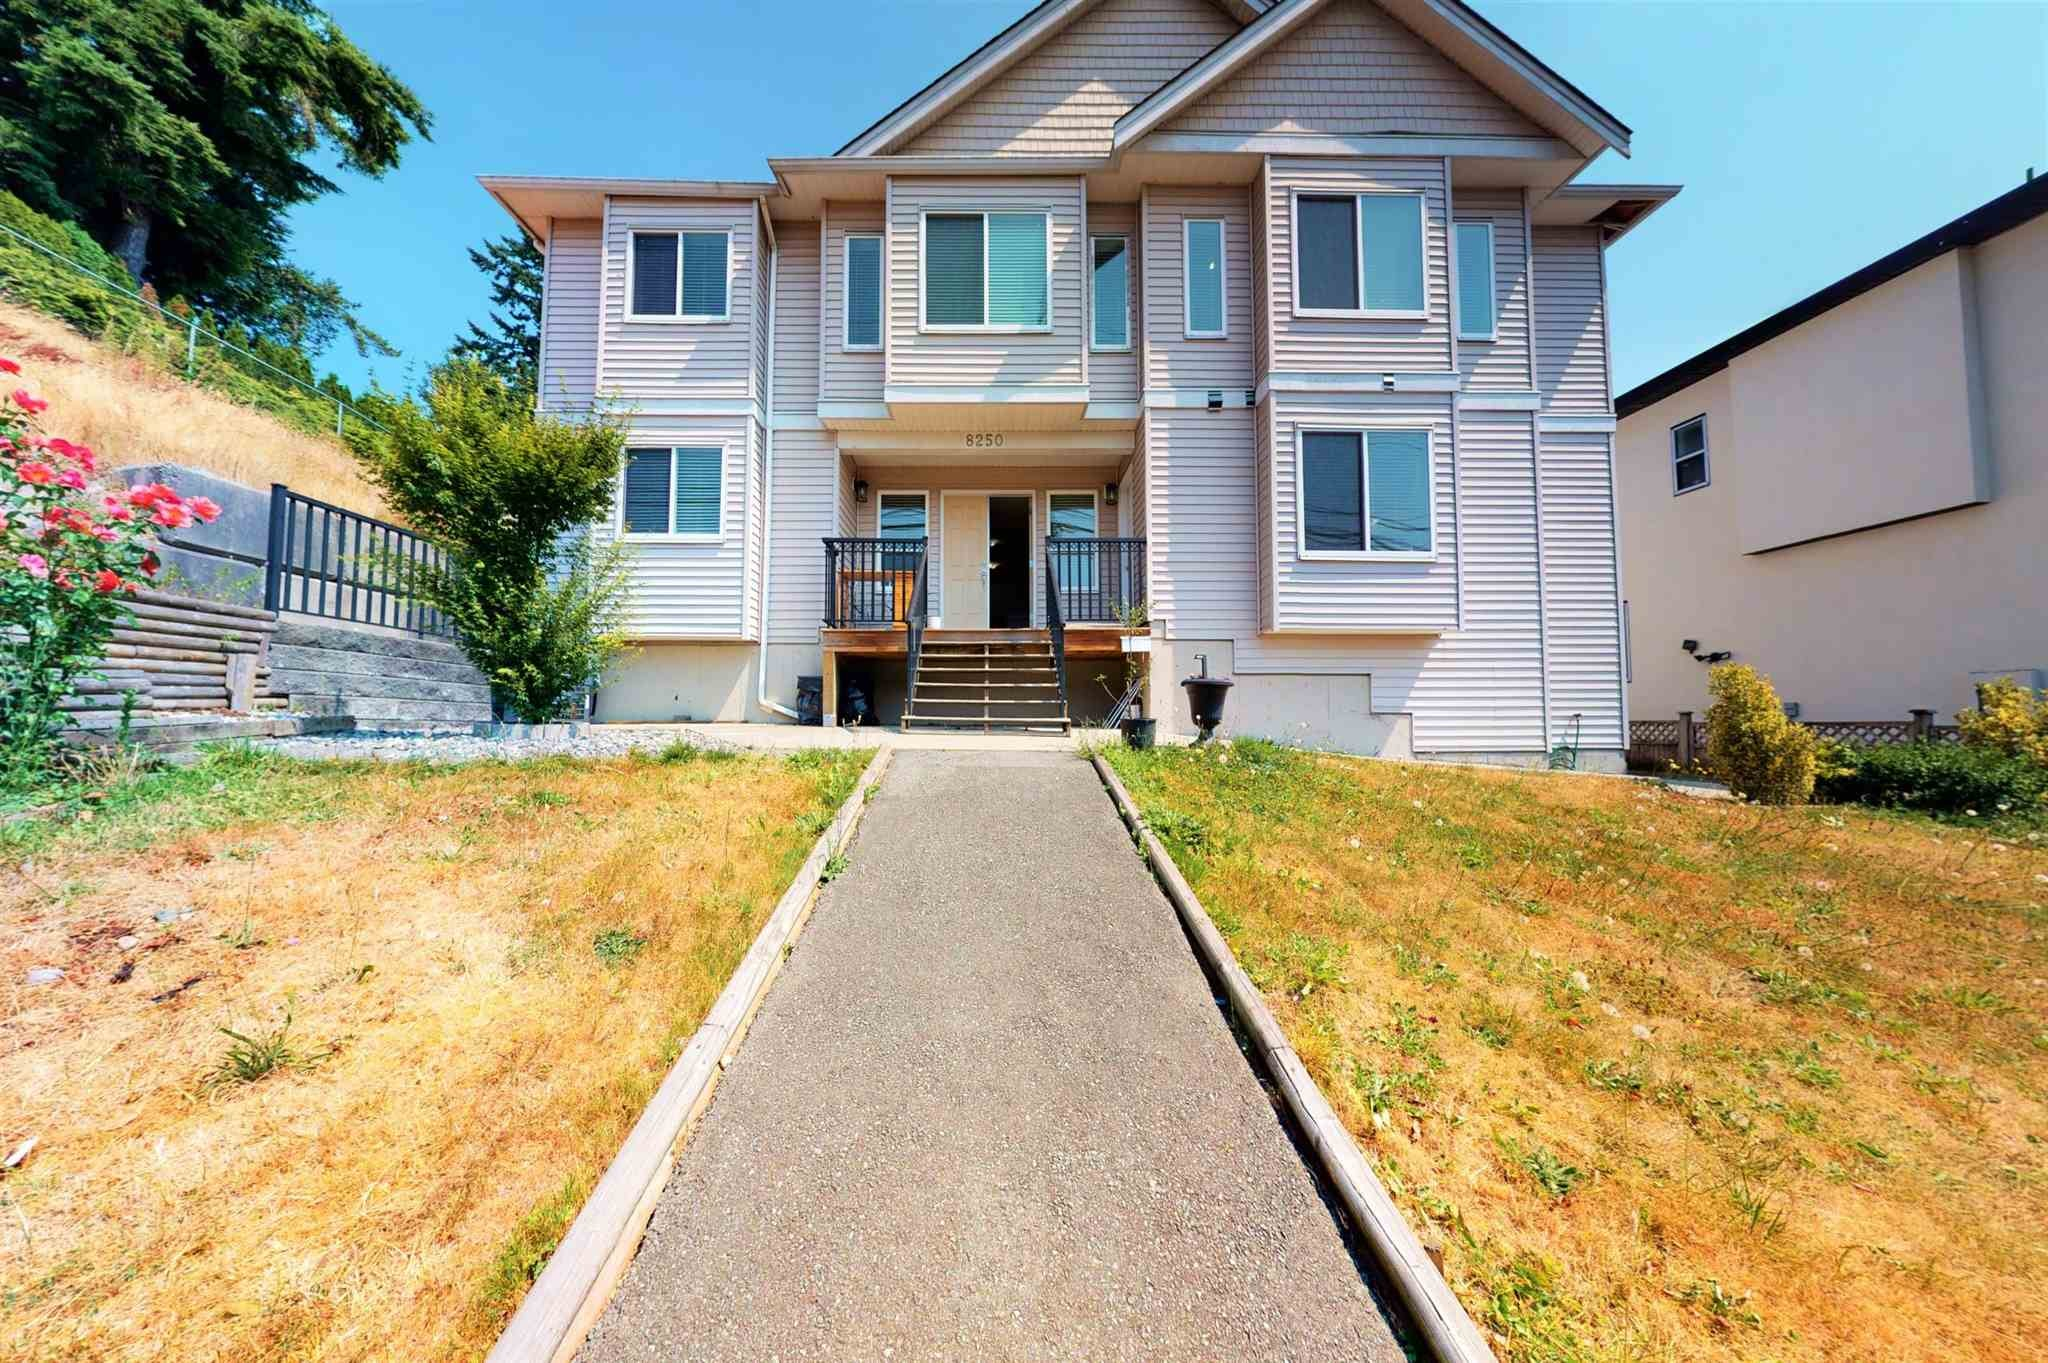 8250 CEDAR STREET - Mission BC House/Single Family for sale, 6 Bedrooms (R2605845)